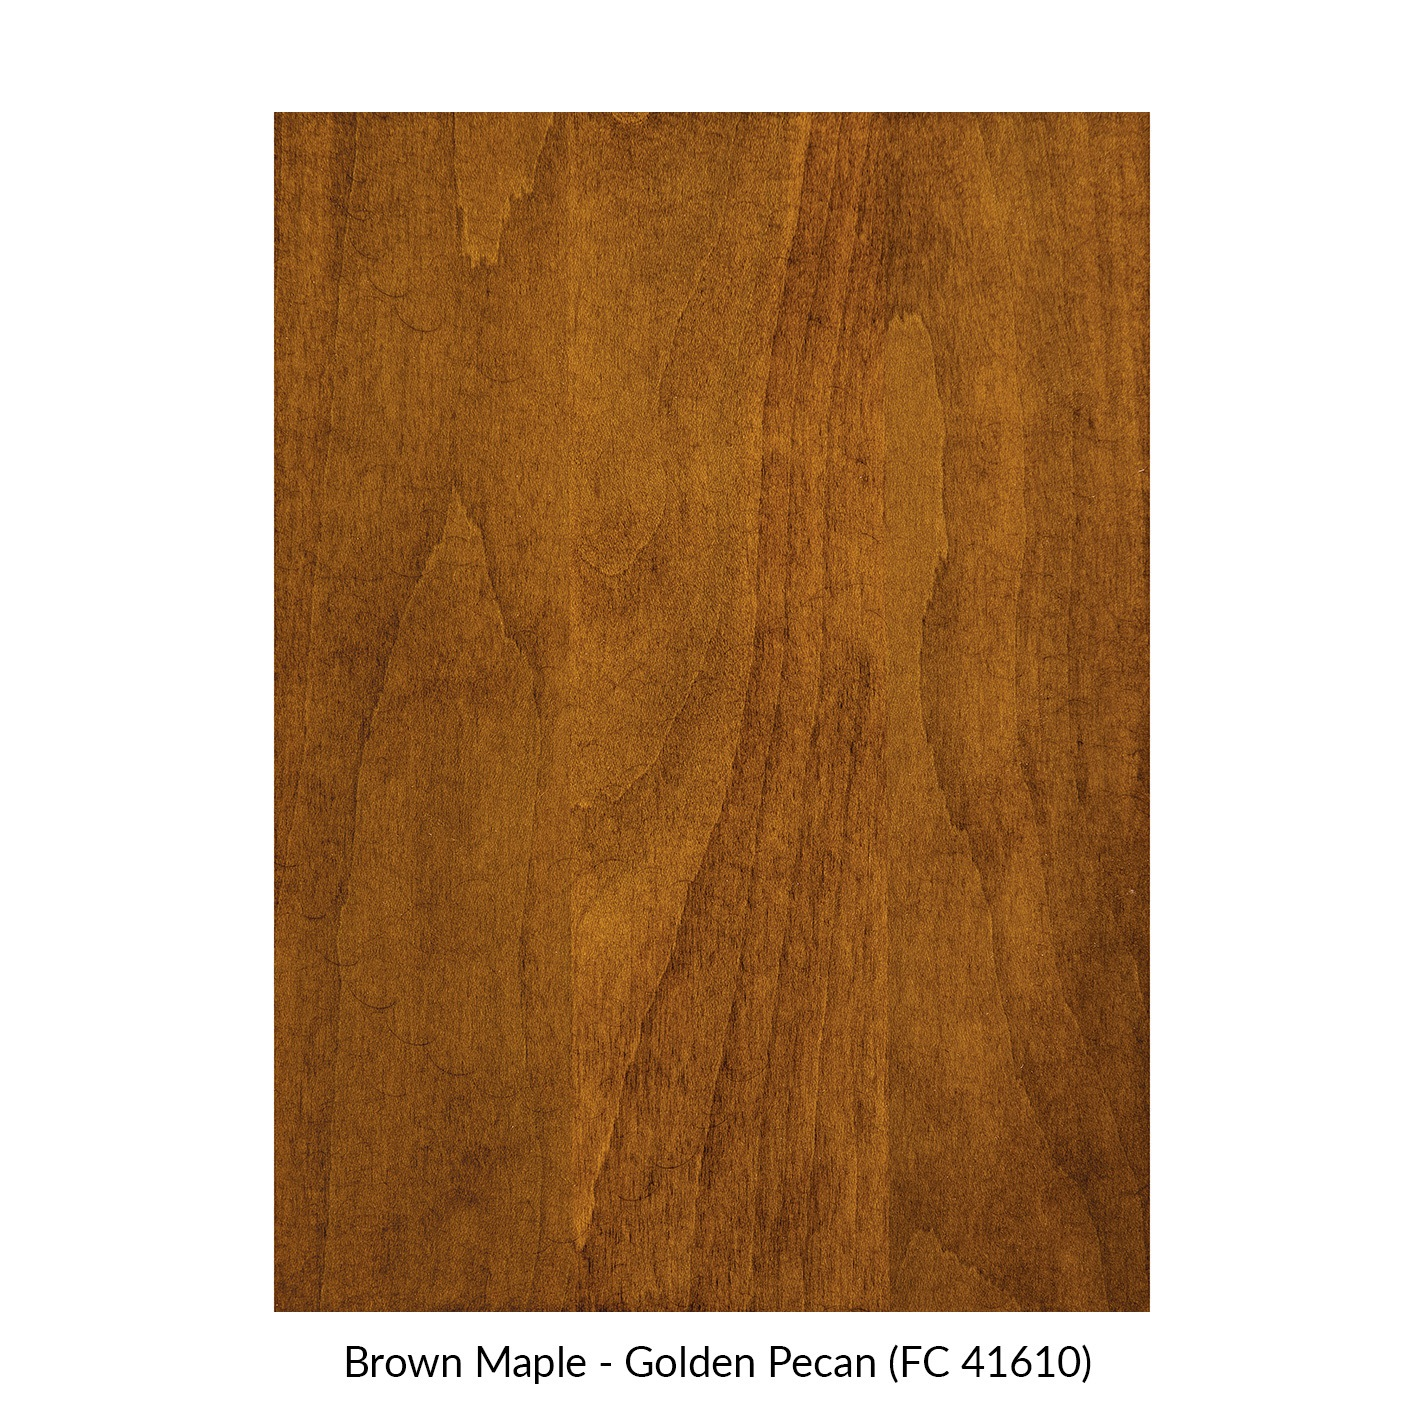 spectrum-brown-maple-golden-pecan-fc-41610.jpg